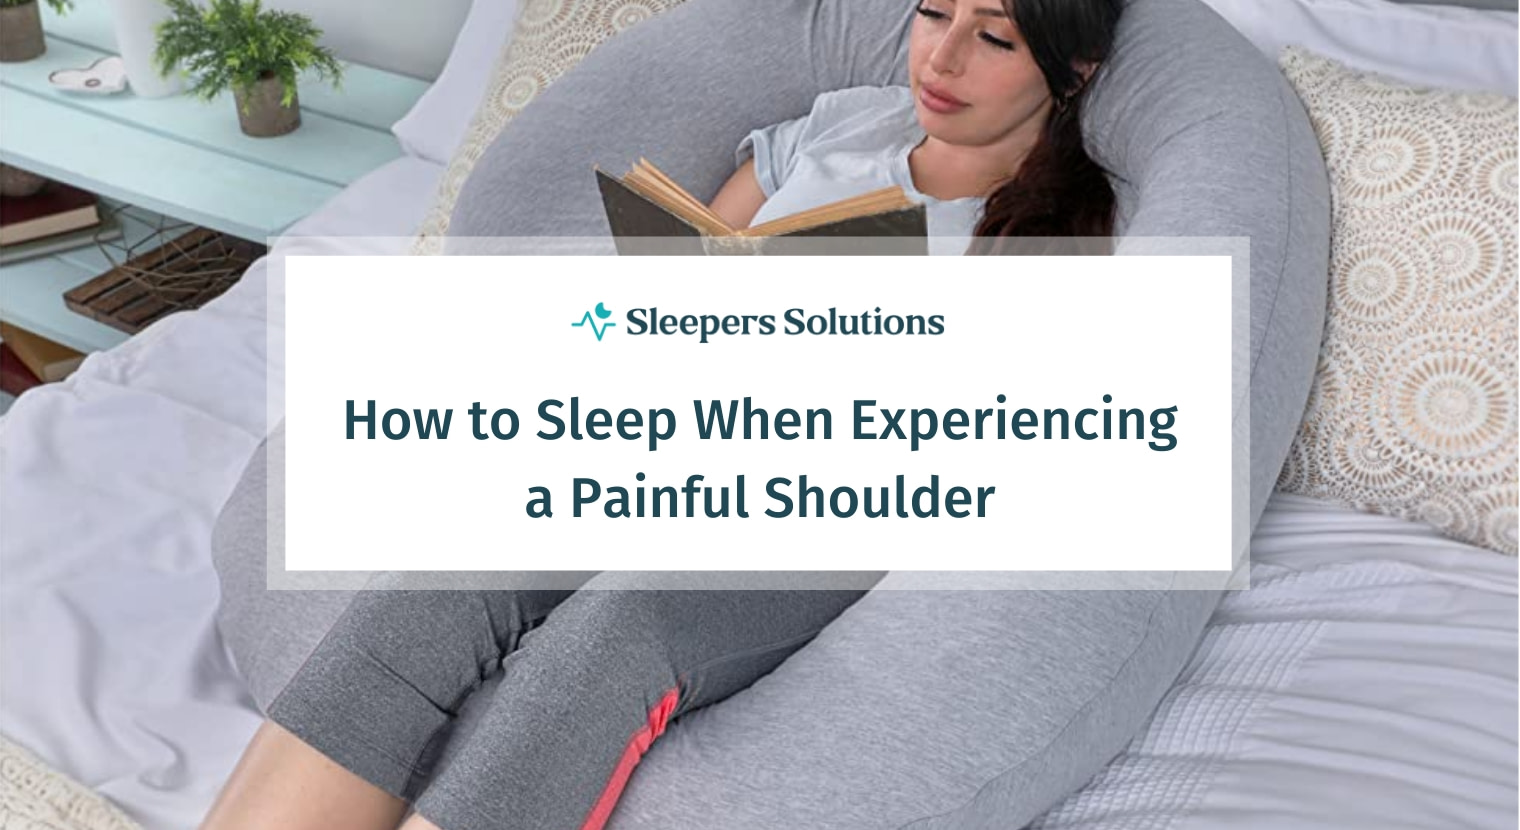 How to Sleep When Experiencing a Painful Shoulder